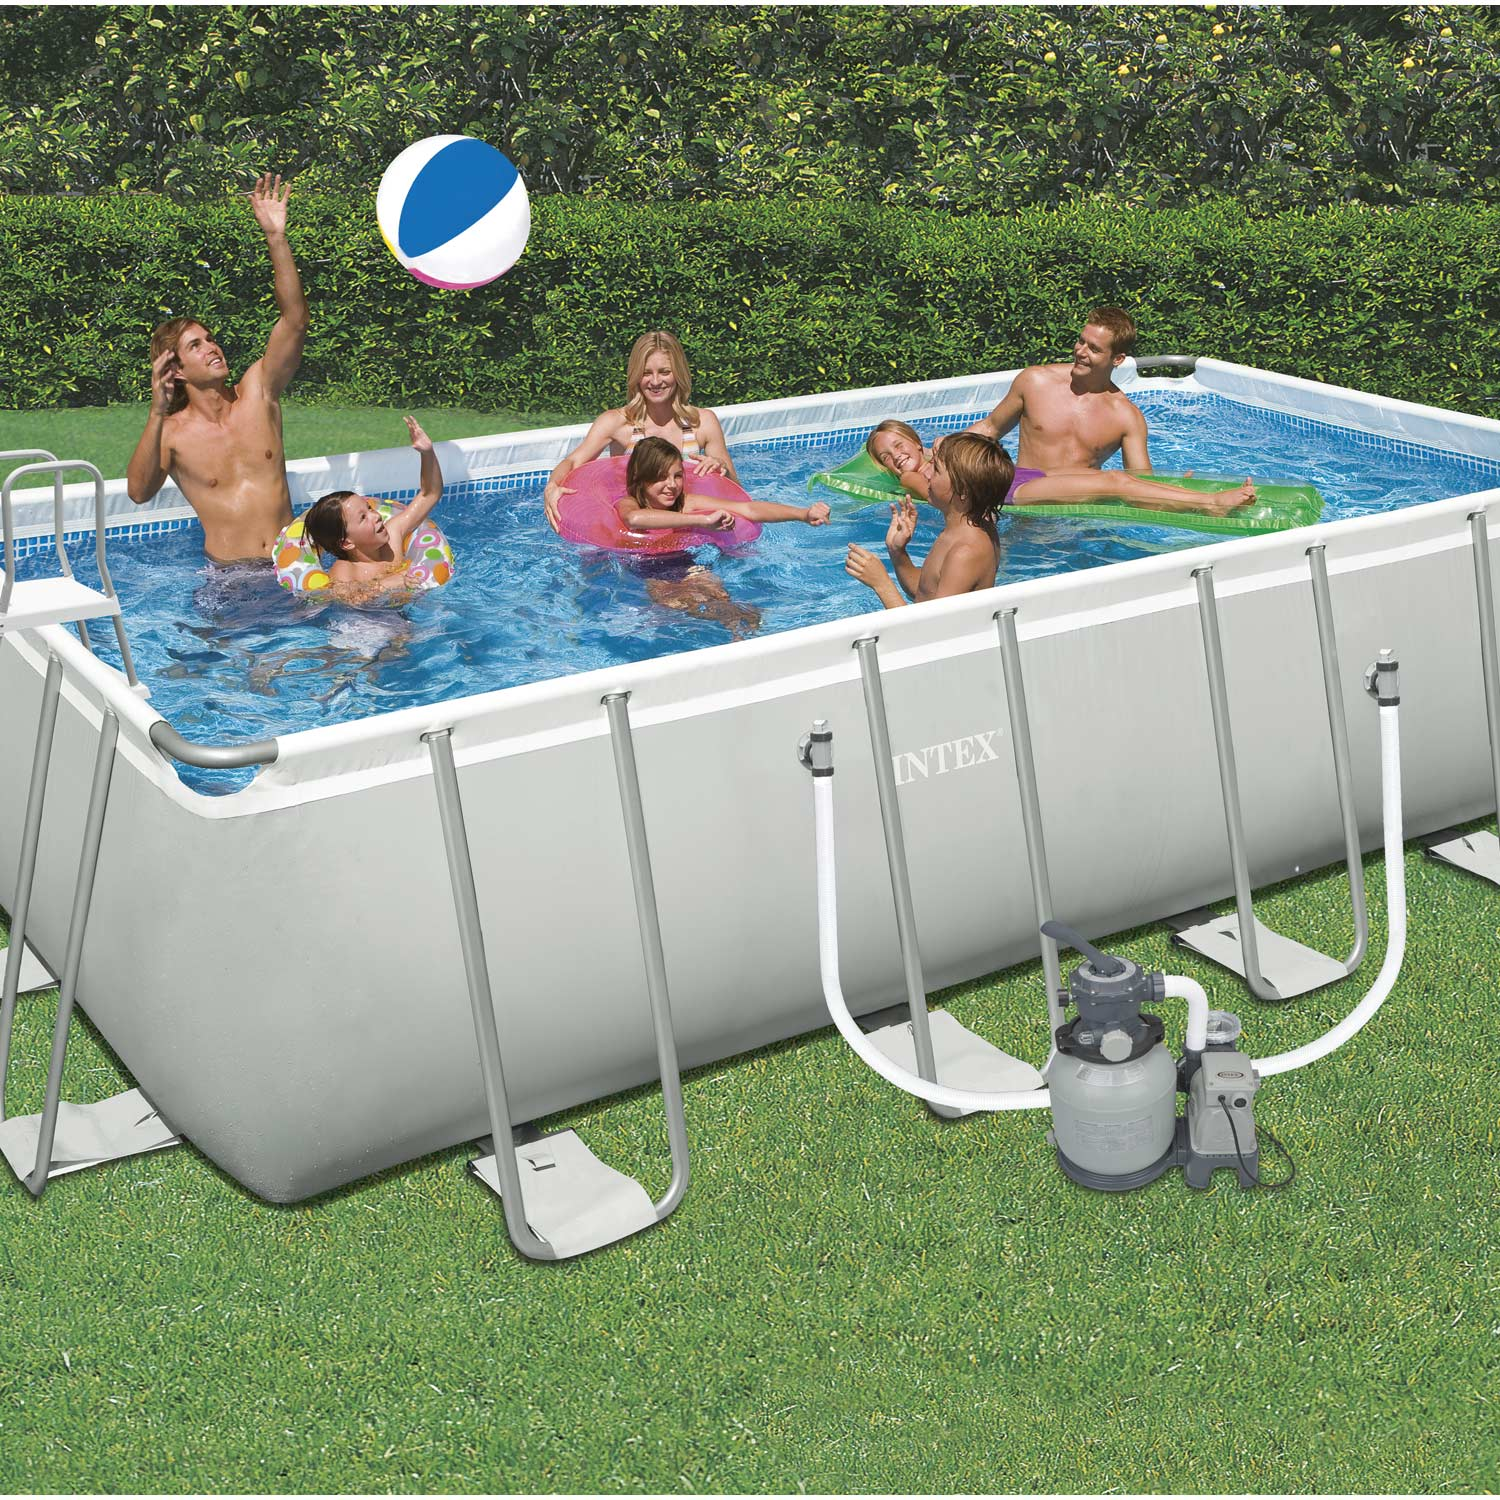 Piscine hors sol autoportante tubulaire intex l x l for Liner piscine hors sol tubulaire